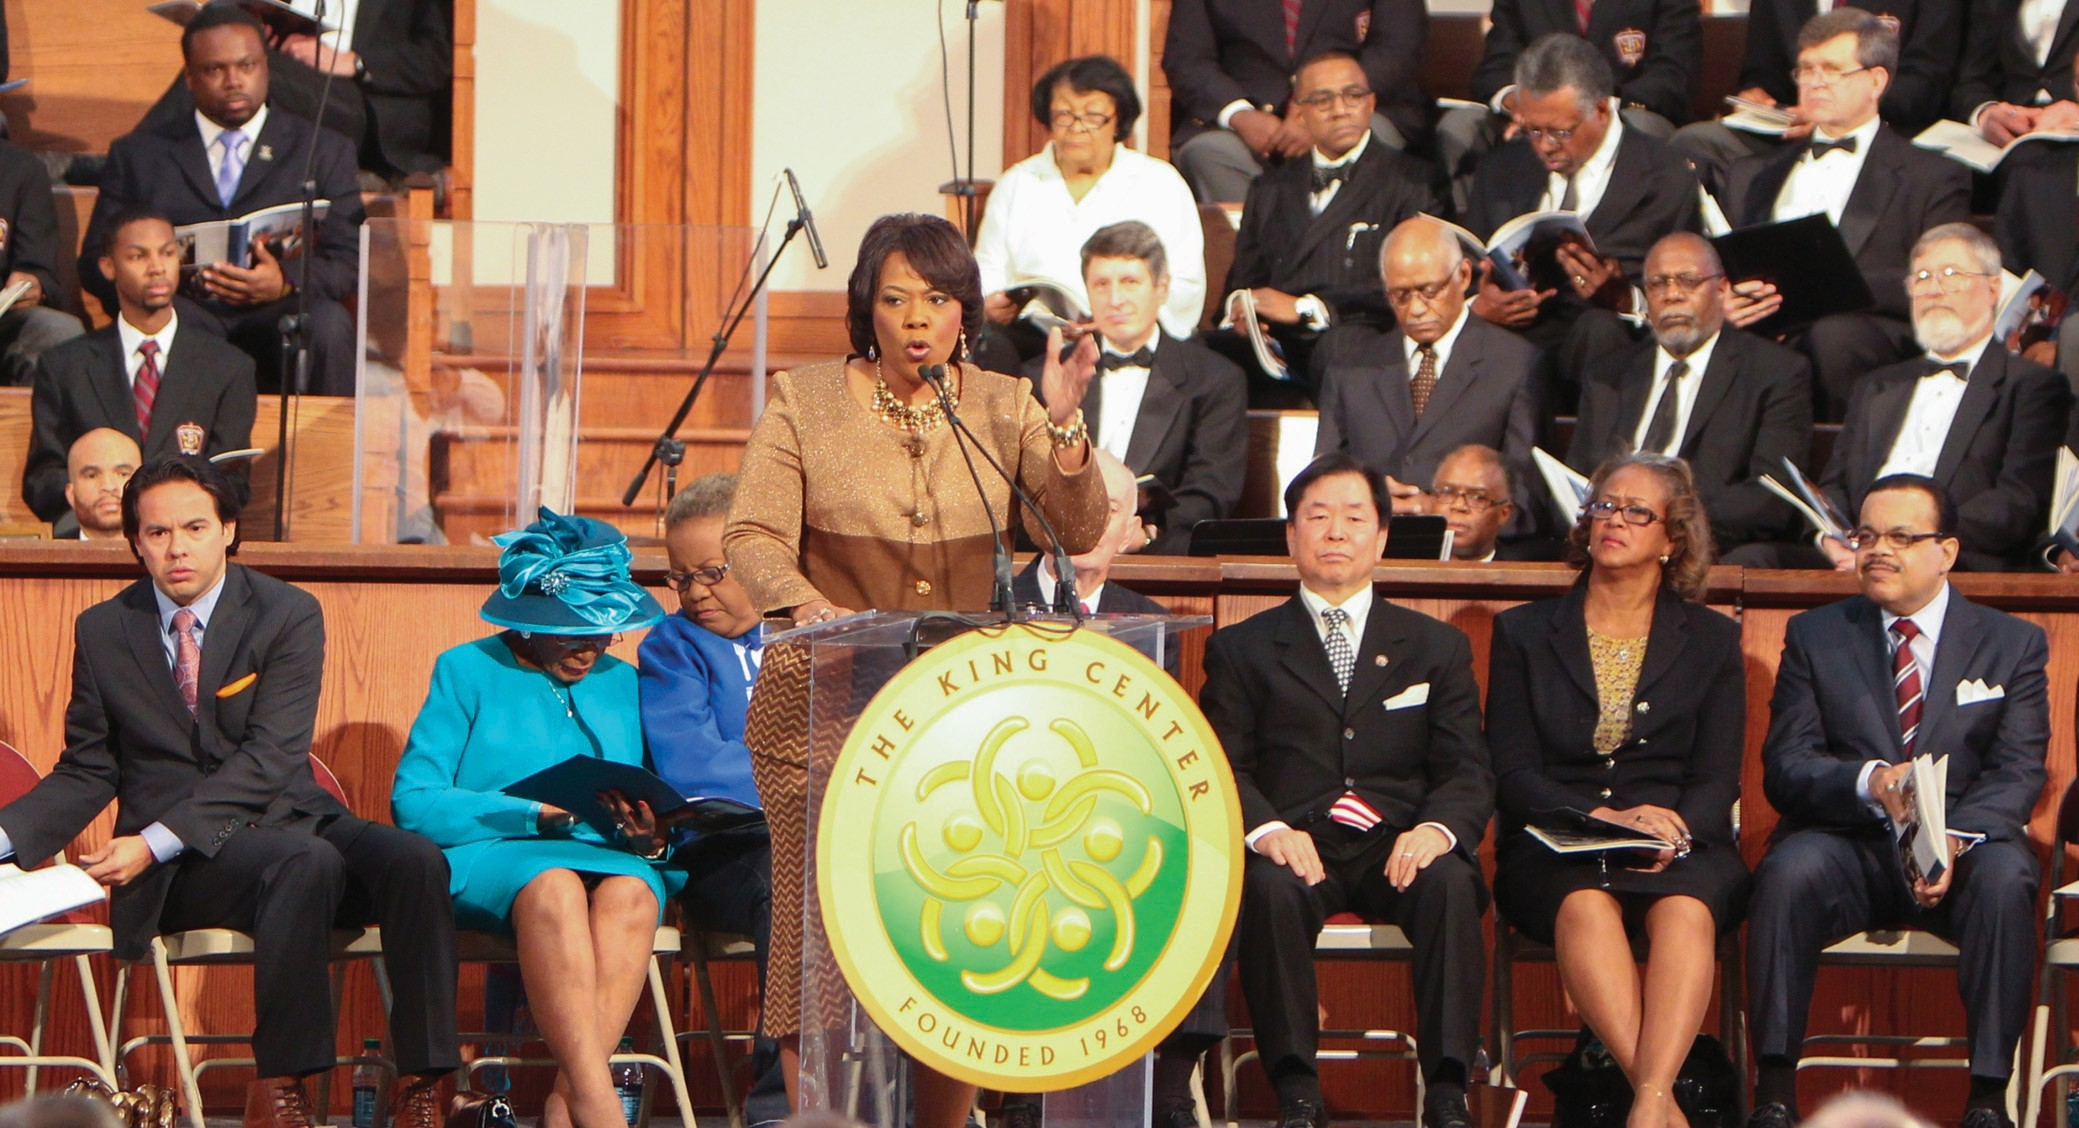 Dr. Bernice King speaking at the podium at the Annual Commemorative Service in Ebenezer Baptist Church Horizon Sanctuary on January 21.